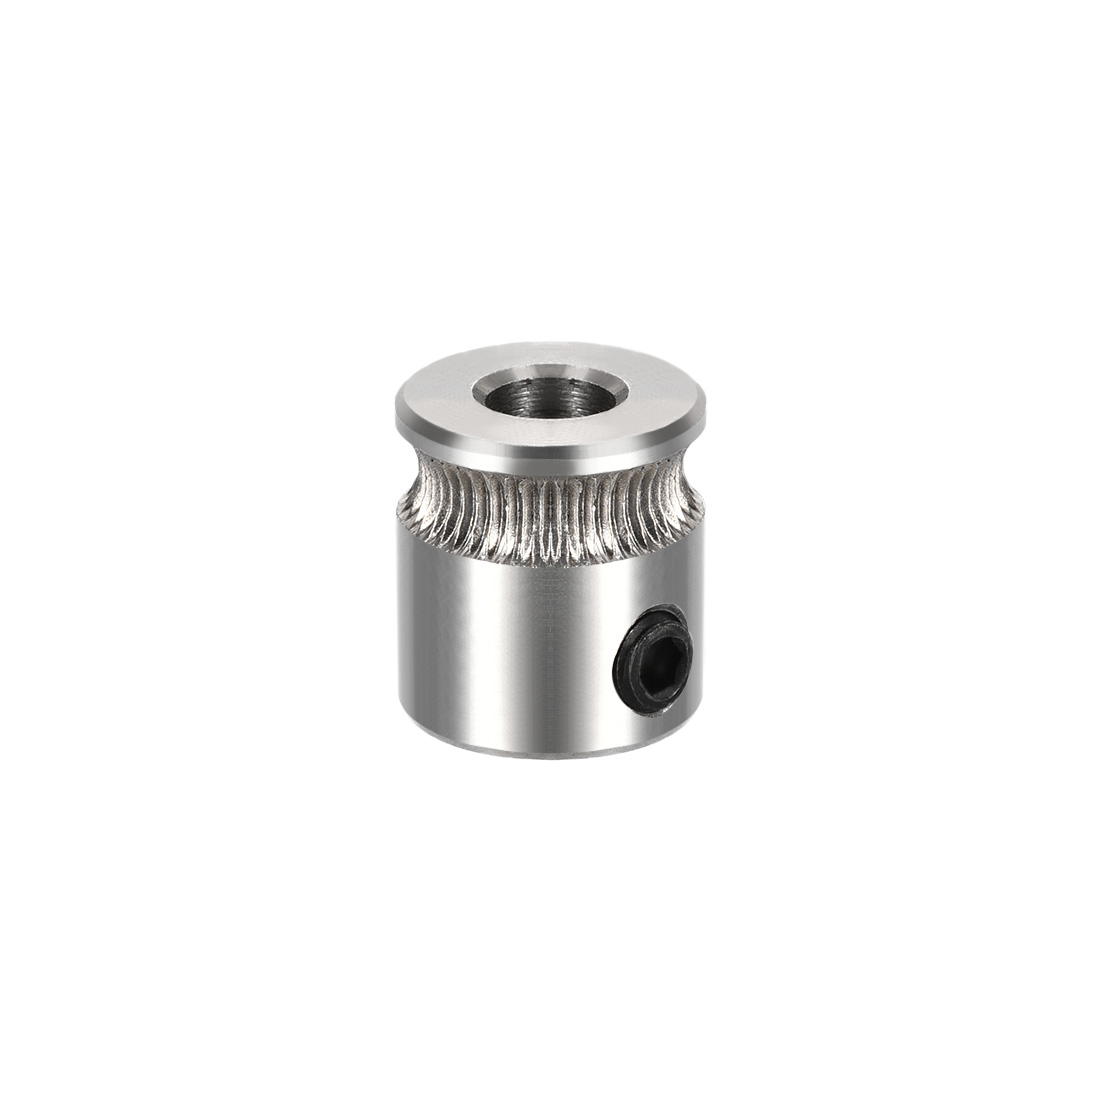 MK7 Drive Gear Direct Extruder Drive 5mm Bore for Extruder